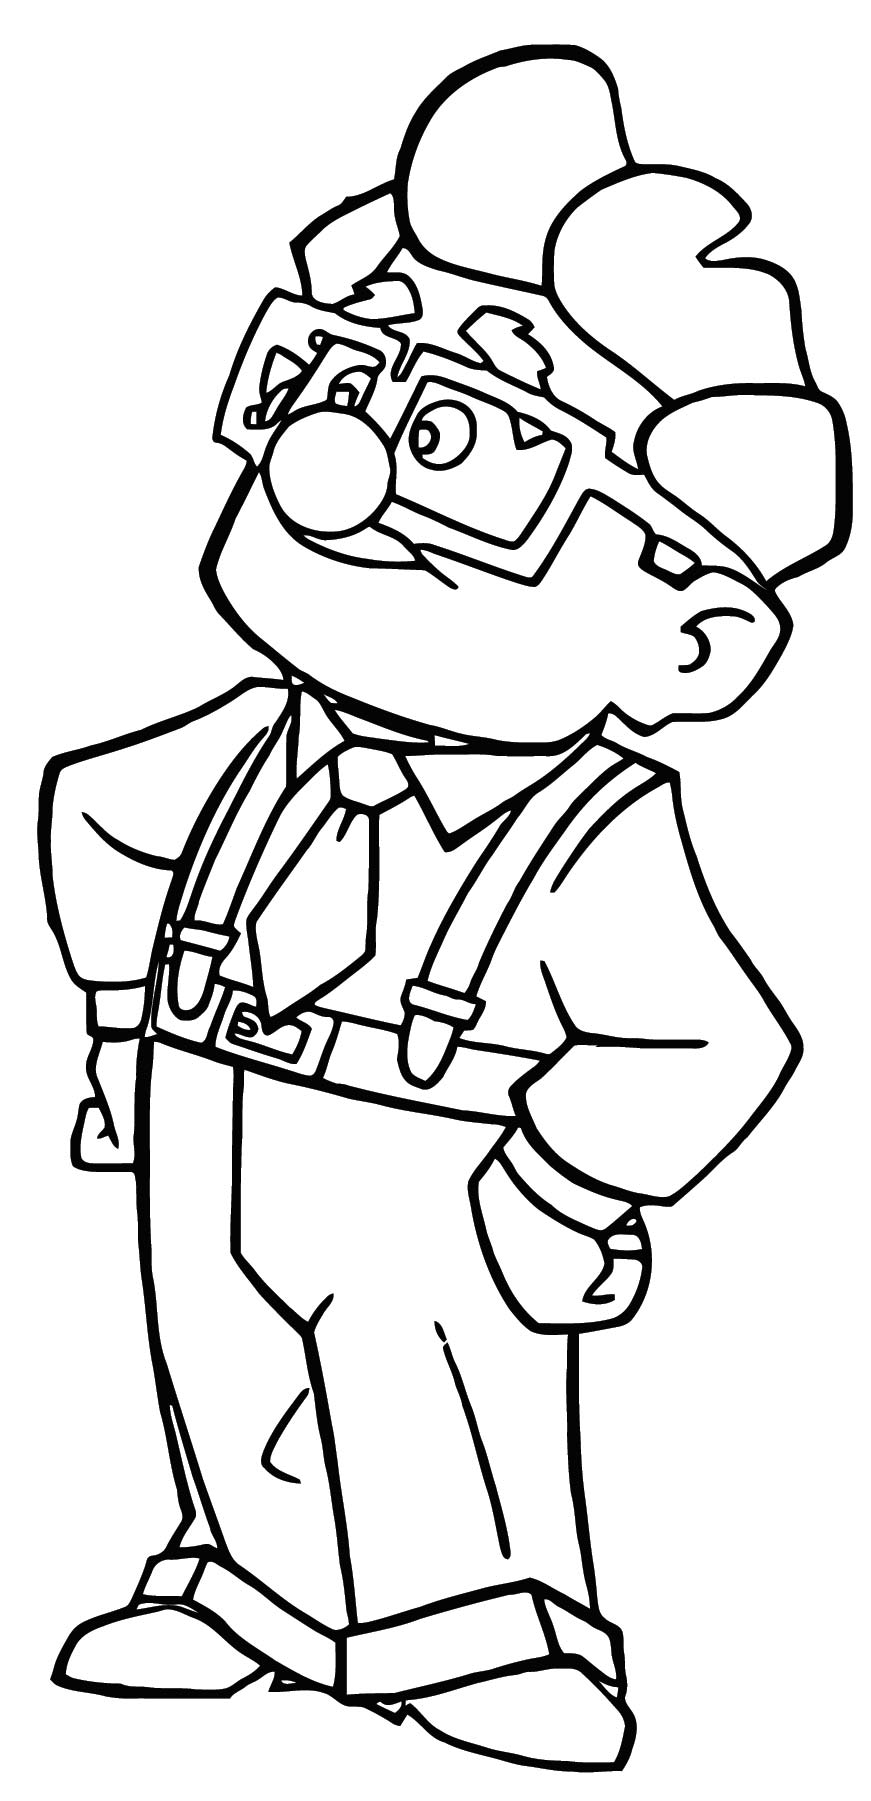 disney up coloring pages - photo#21